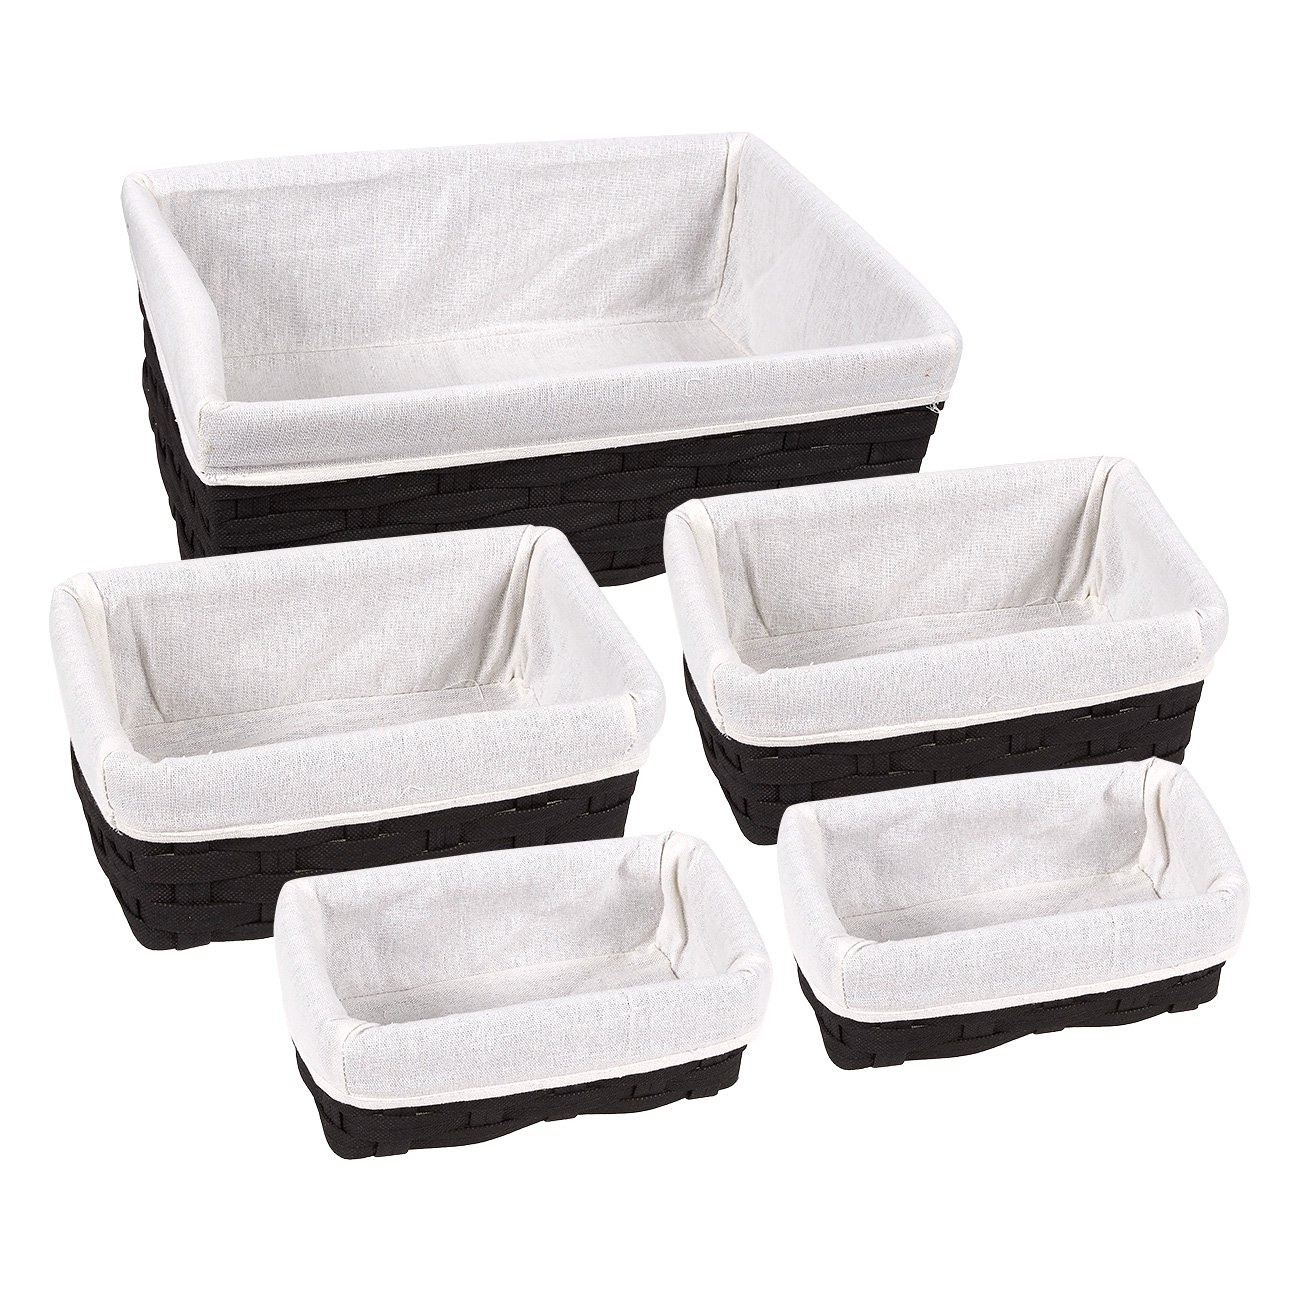 Juvale Storage Baskets - 5-Piece Nesting Baskets, Black Storage Containers - Storage Bins Set - Decorative Organizing Baskets Shelves, Kitchen, Bathroom Bedroom - 2 Small, 2 Medium, 1 Large